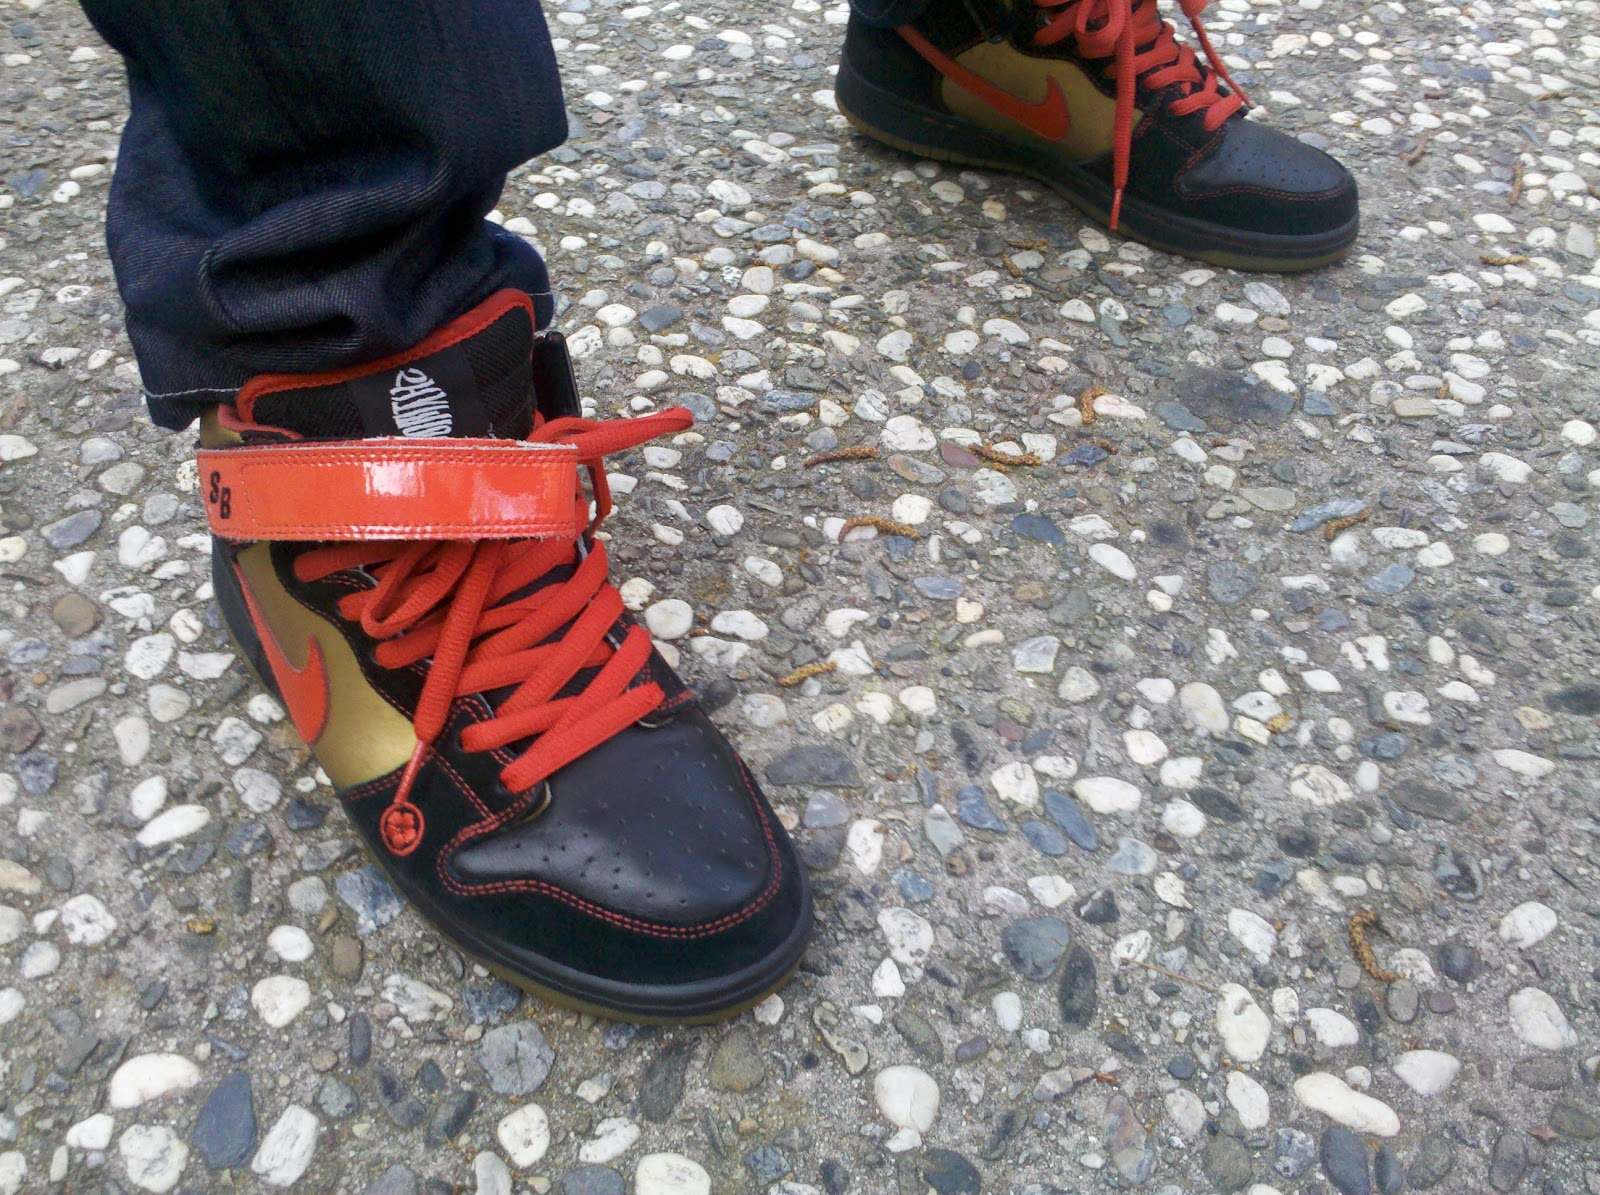 b61fad82d5e KickItFresh Sneaker Photo Blog  SNEAKER REVIEW - DUNK MID SB